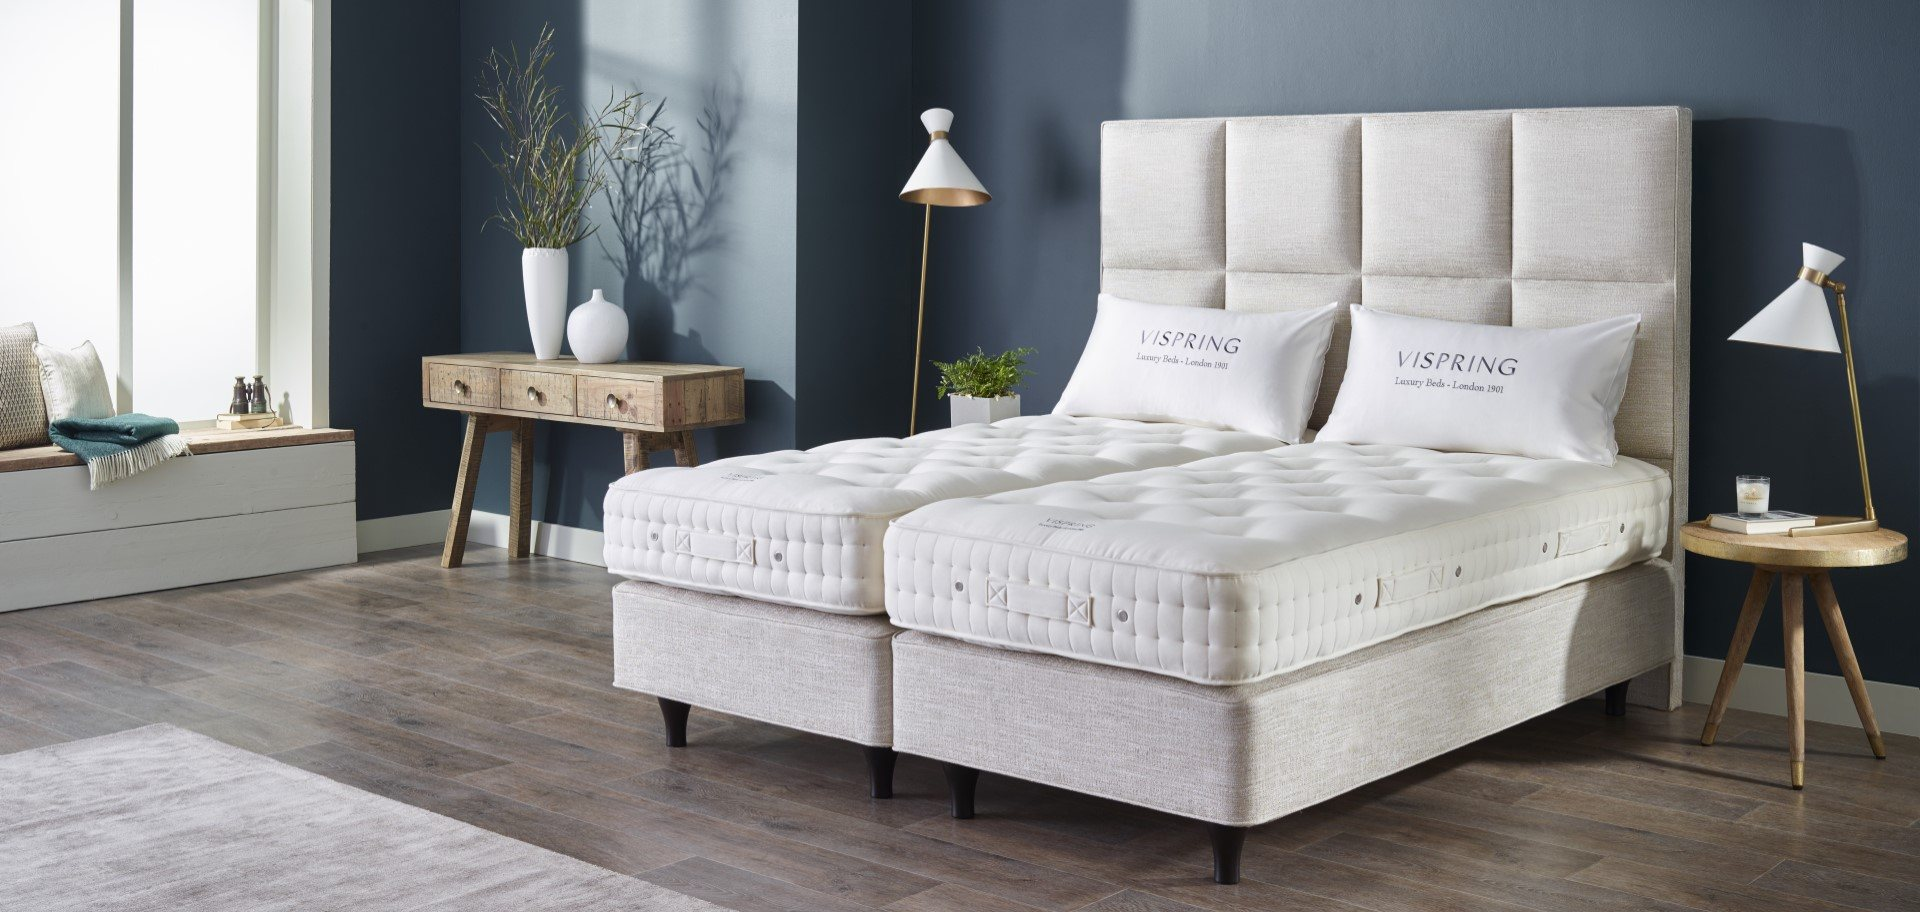 VISPRING BED SPECIALISTS